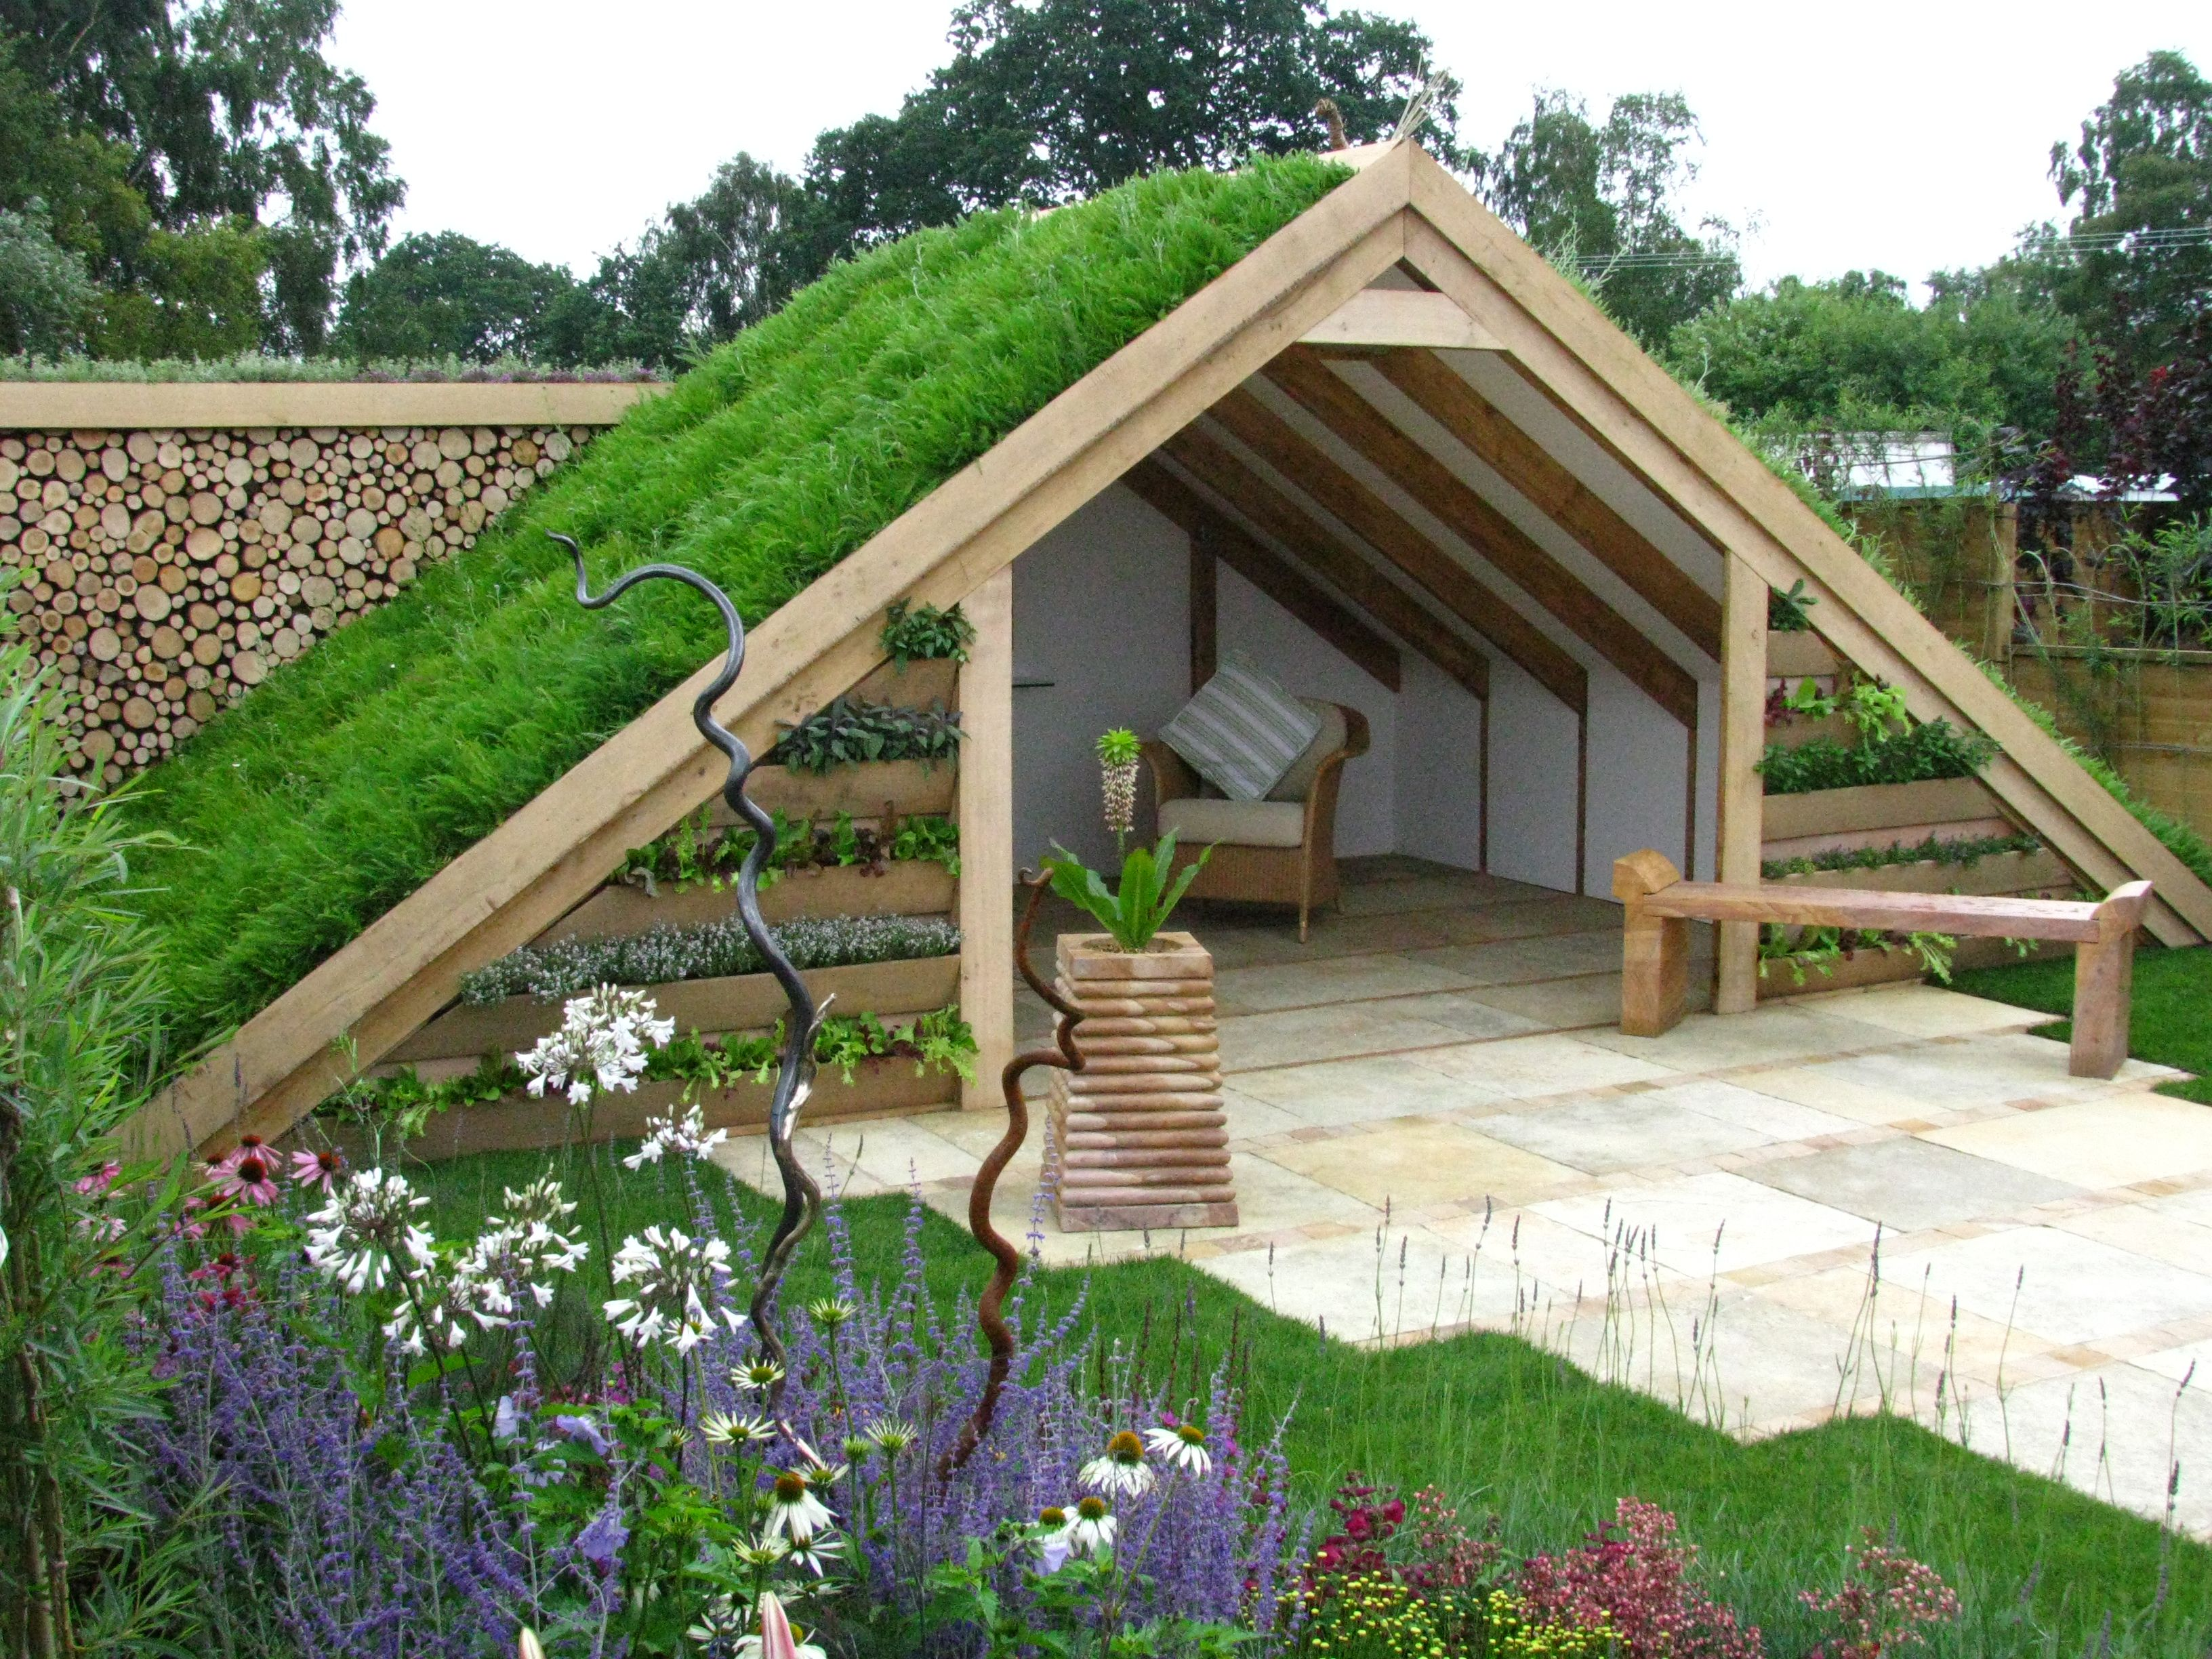 Garden Design organic vegetable garden herb edible kitchen garden Green Roof Shed At Chasewater Innovation Centre Brownhills Staffordshire Uk Photo Shed Designgarden